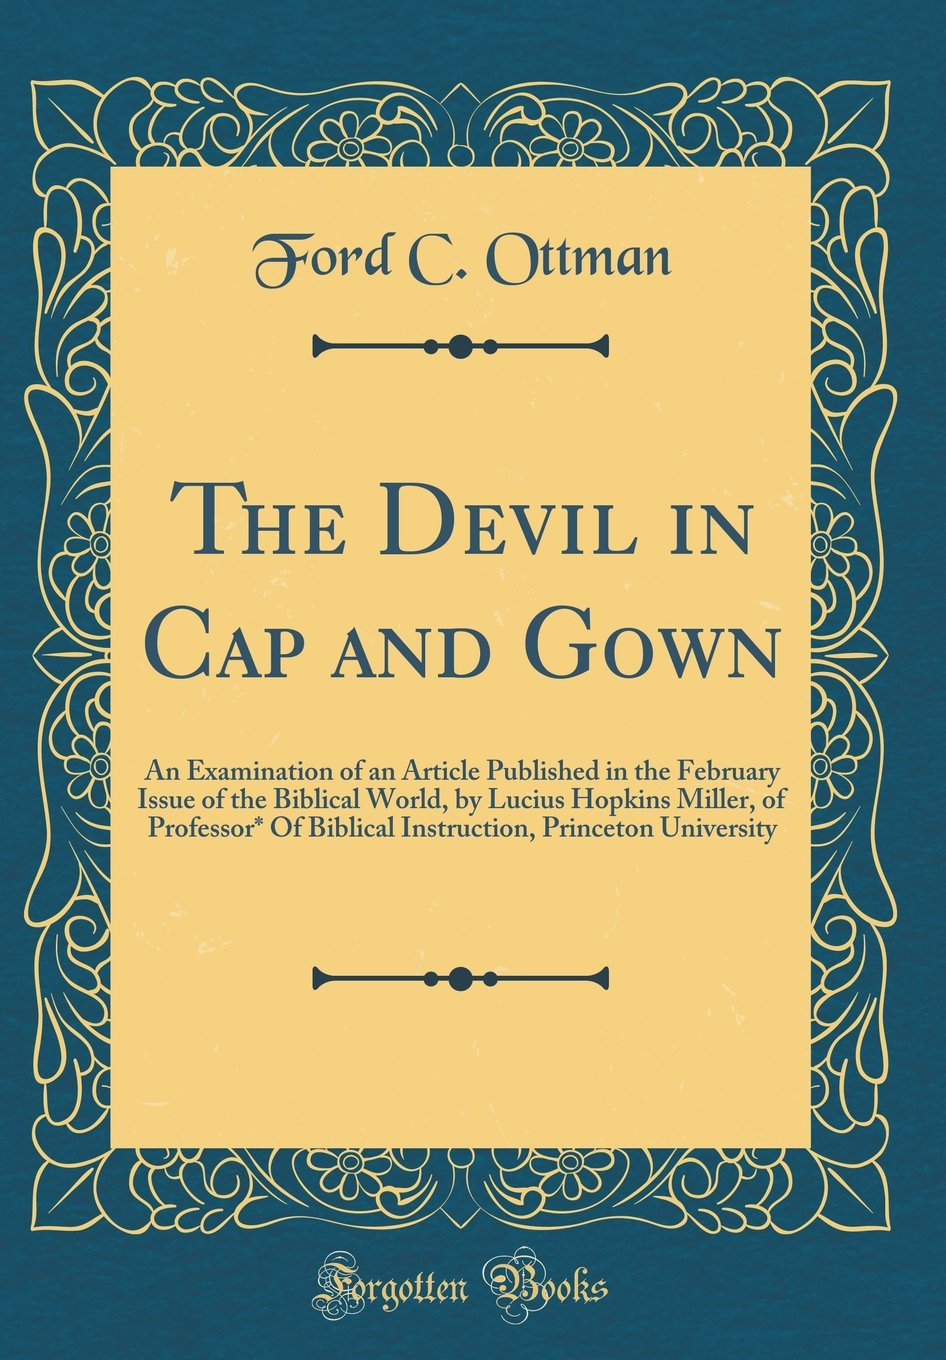 The Devil in Cap and Gown: An Examination of an Article Published in ...